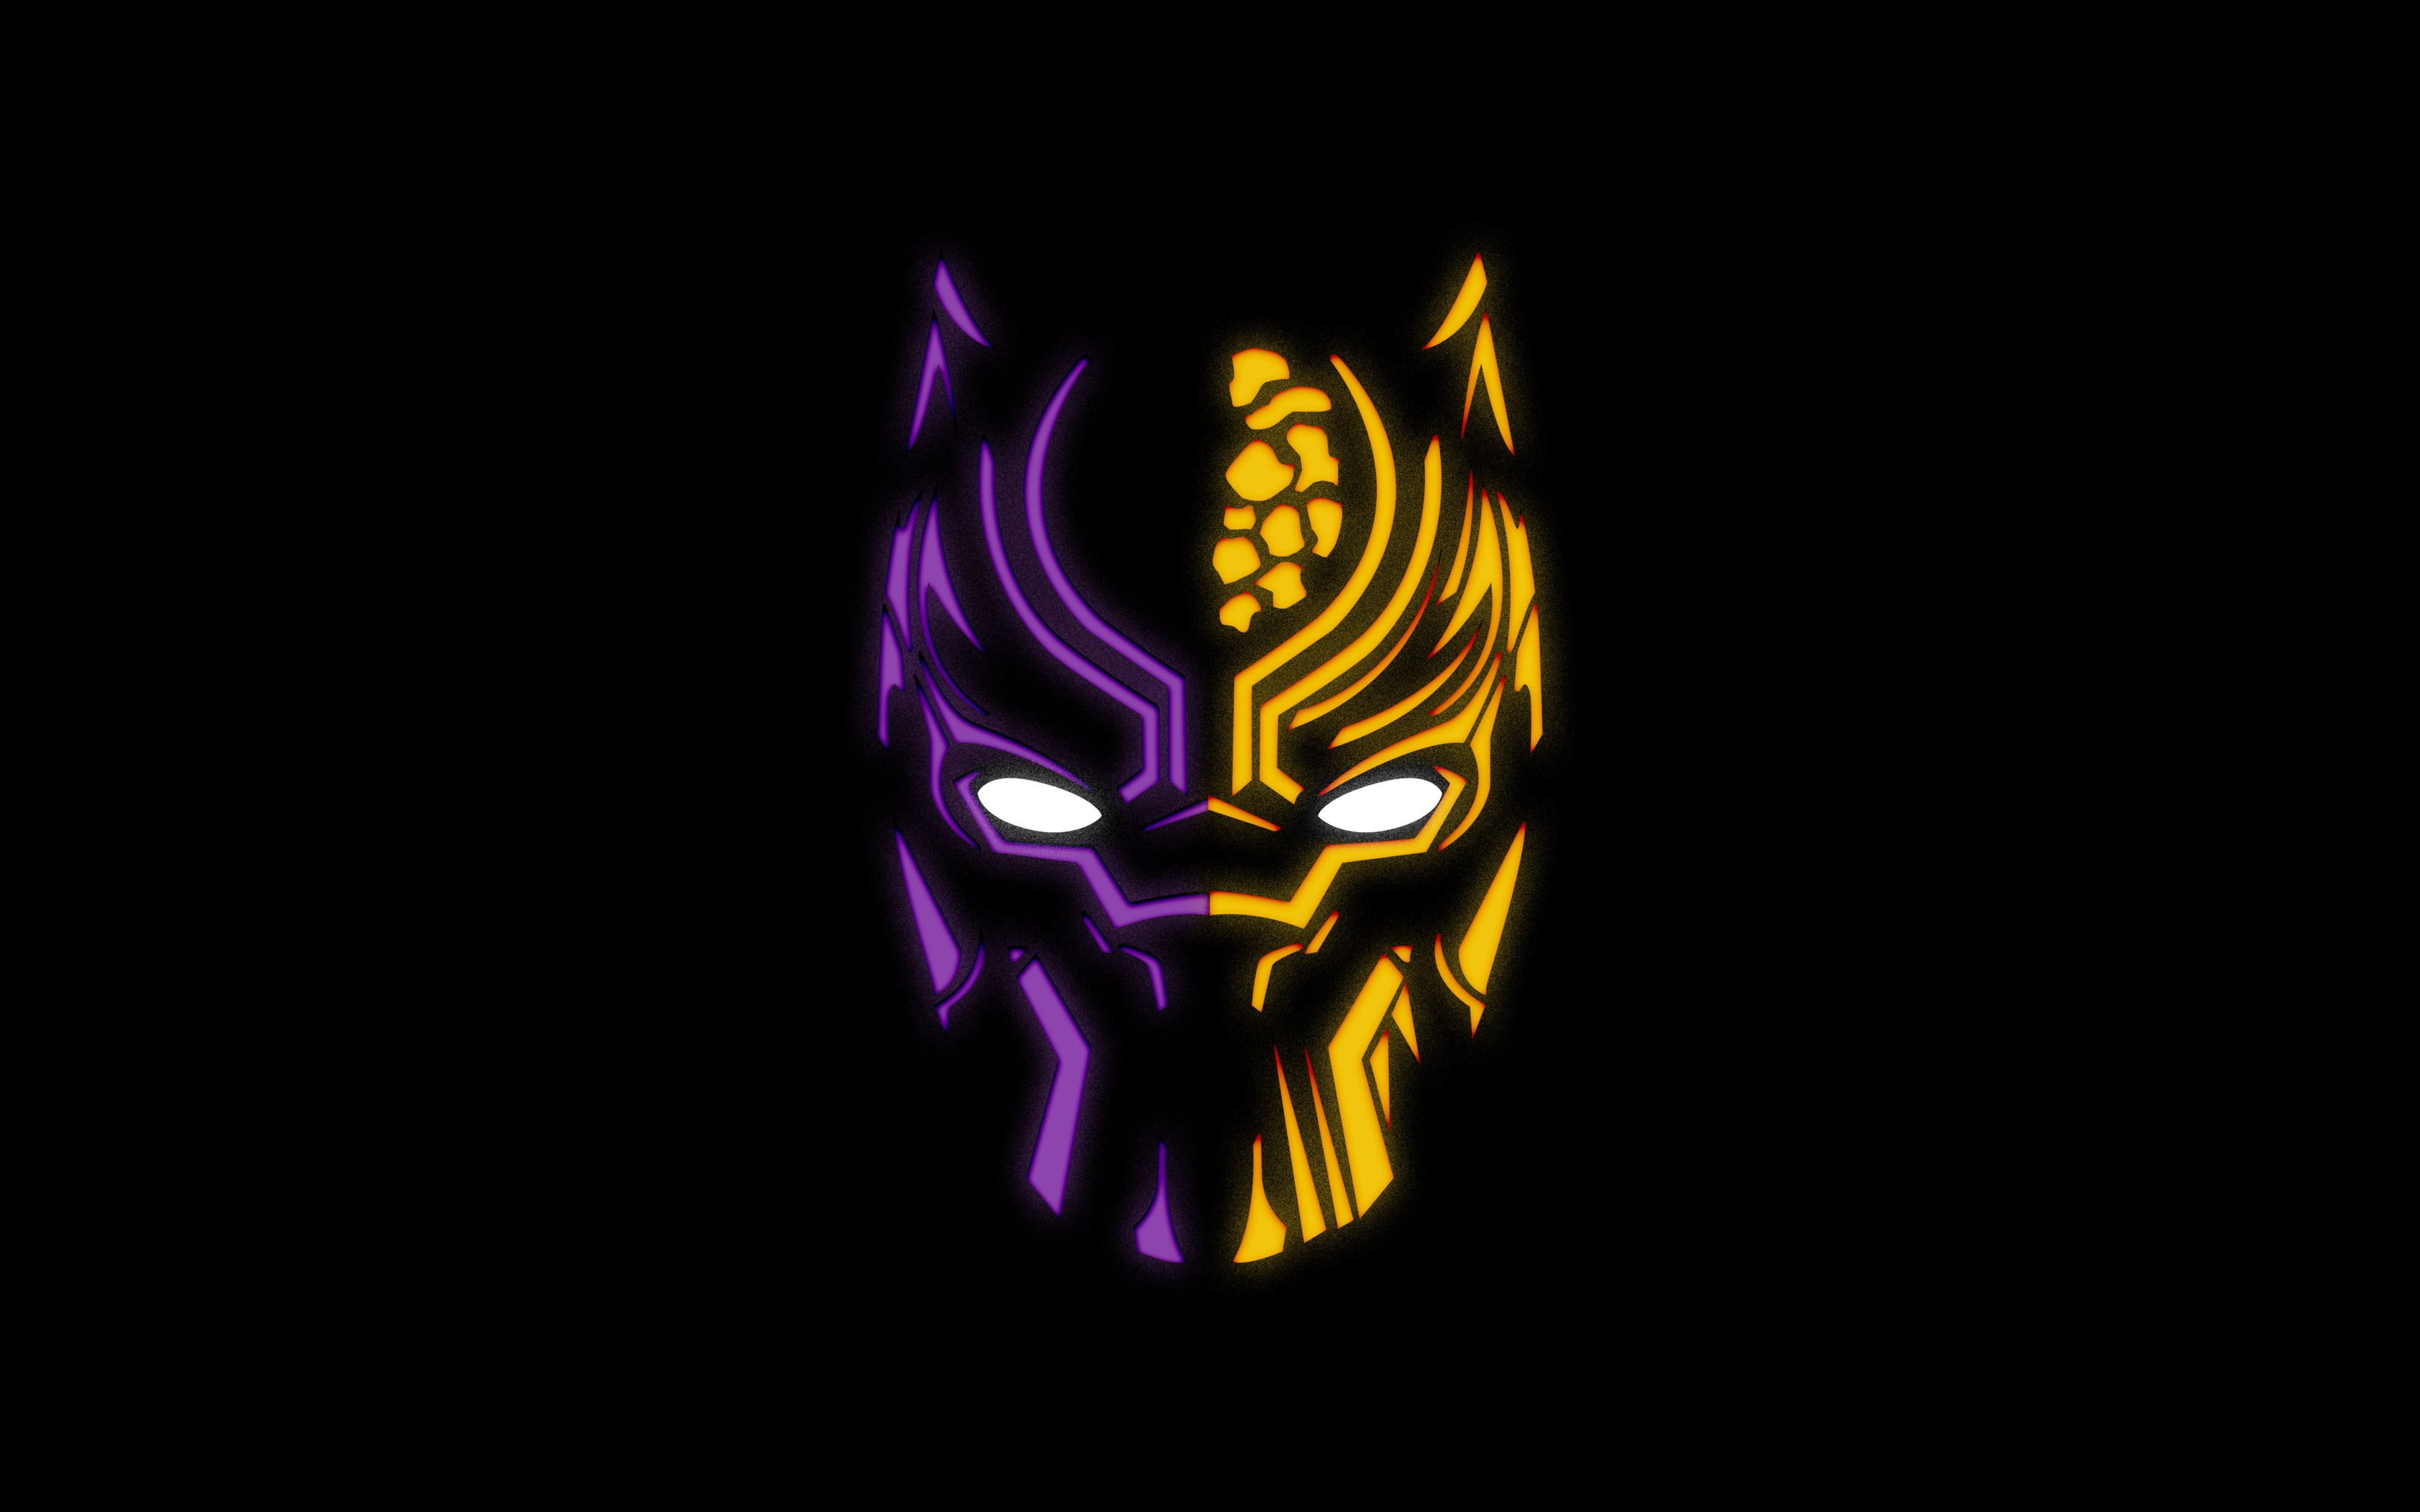 Black Panther Wallpapers Top Free Black Panther Backgrounds Wallpaperaccess